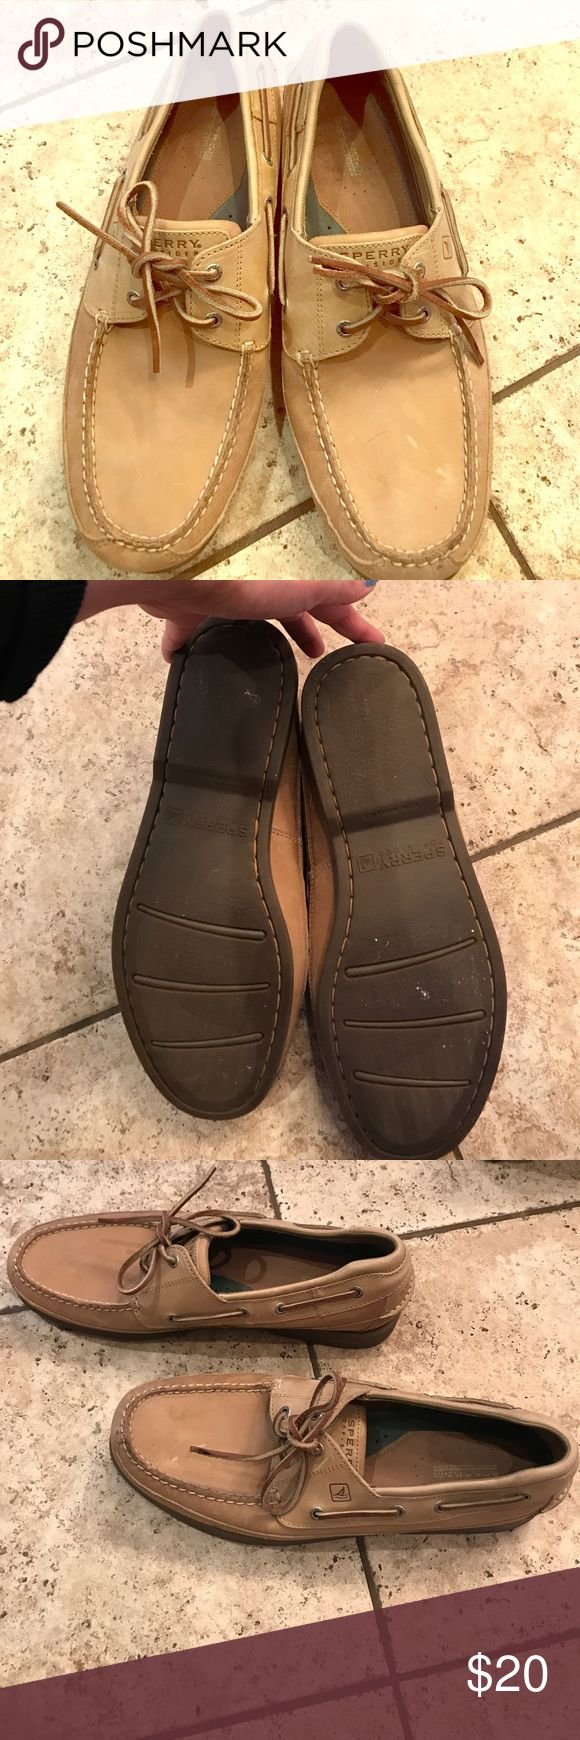 Men's Size 13 Sperry Topsiders Practically new Men's Sperry Topsiders. My husband only wore them once or twice. These are close to perfect condition. Sperry Top-Sider Shoes Flats & Loafers